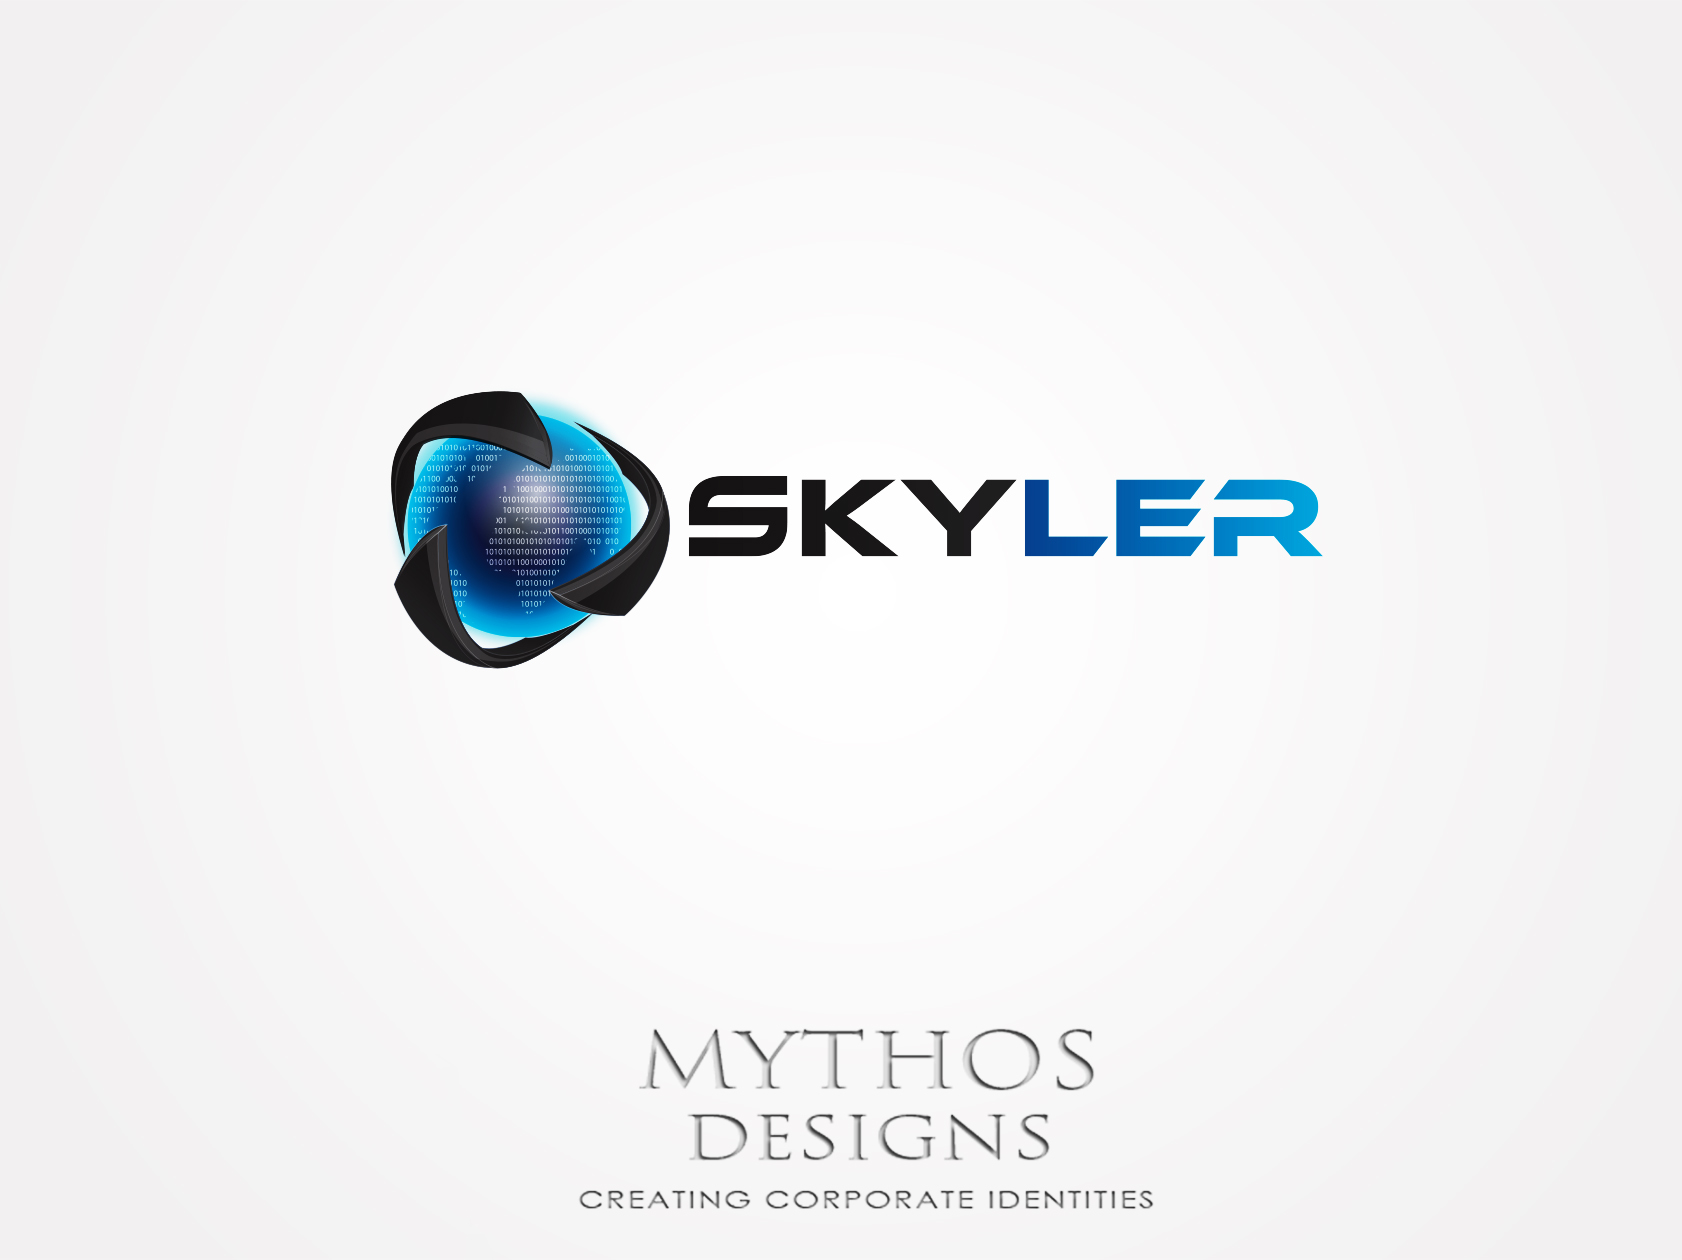 Logo Design by Mythos Designs - Entry No. 147 in the Logo Design Contest Artistic Logo Design for Skyler.Asia.